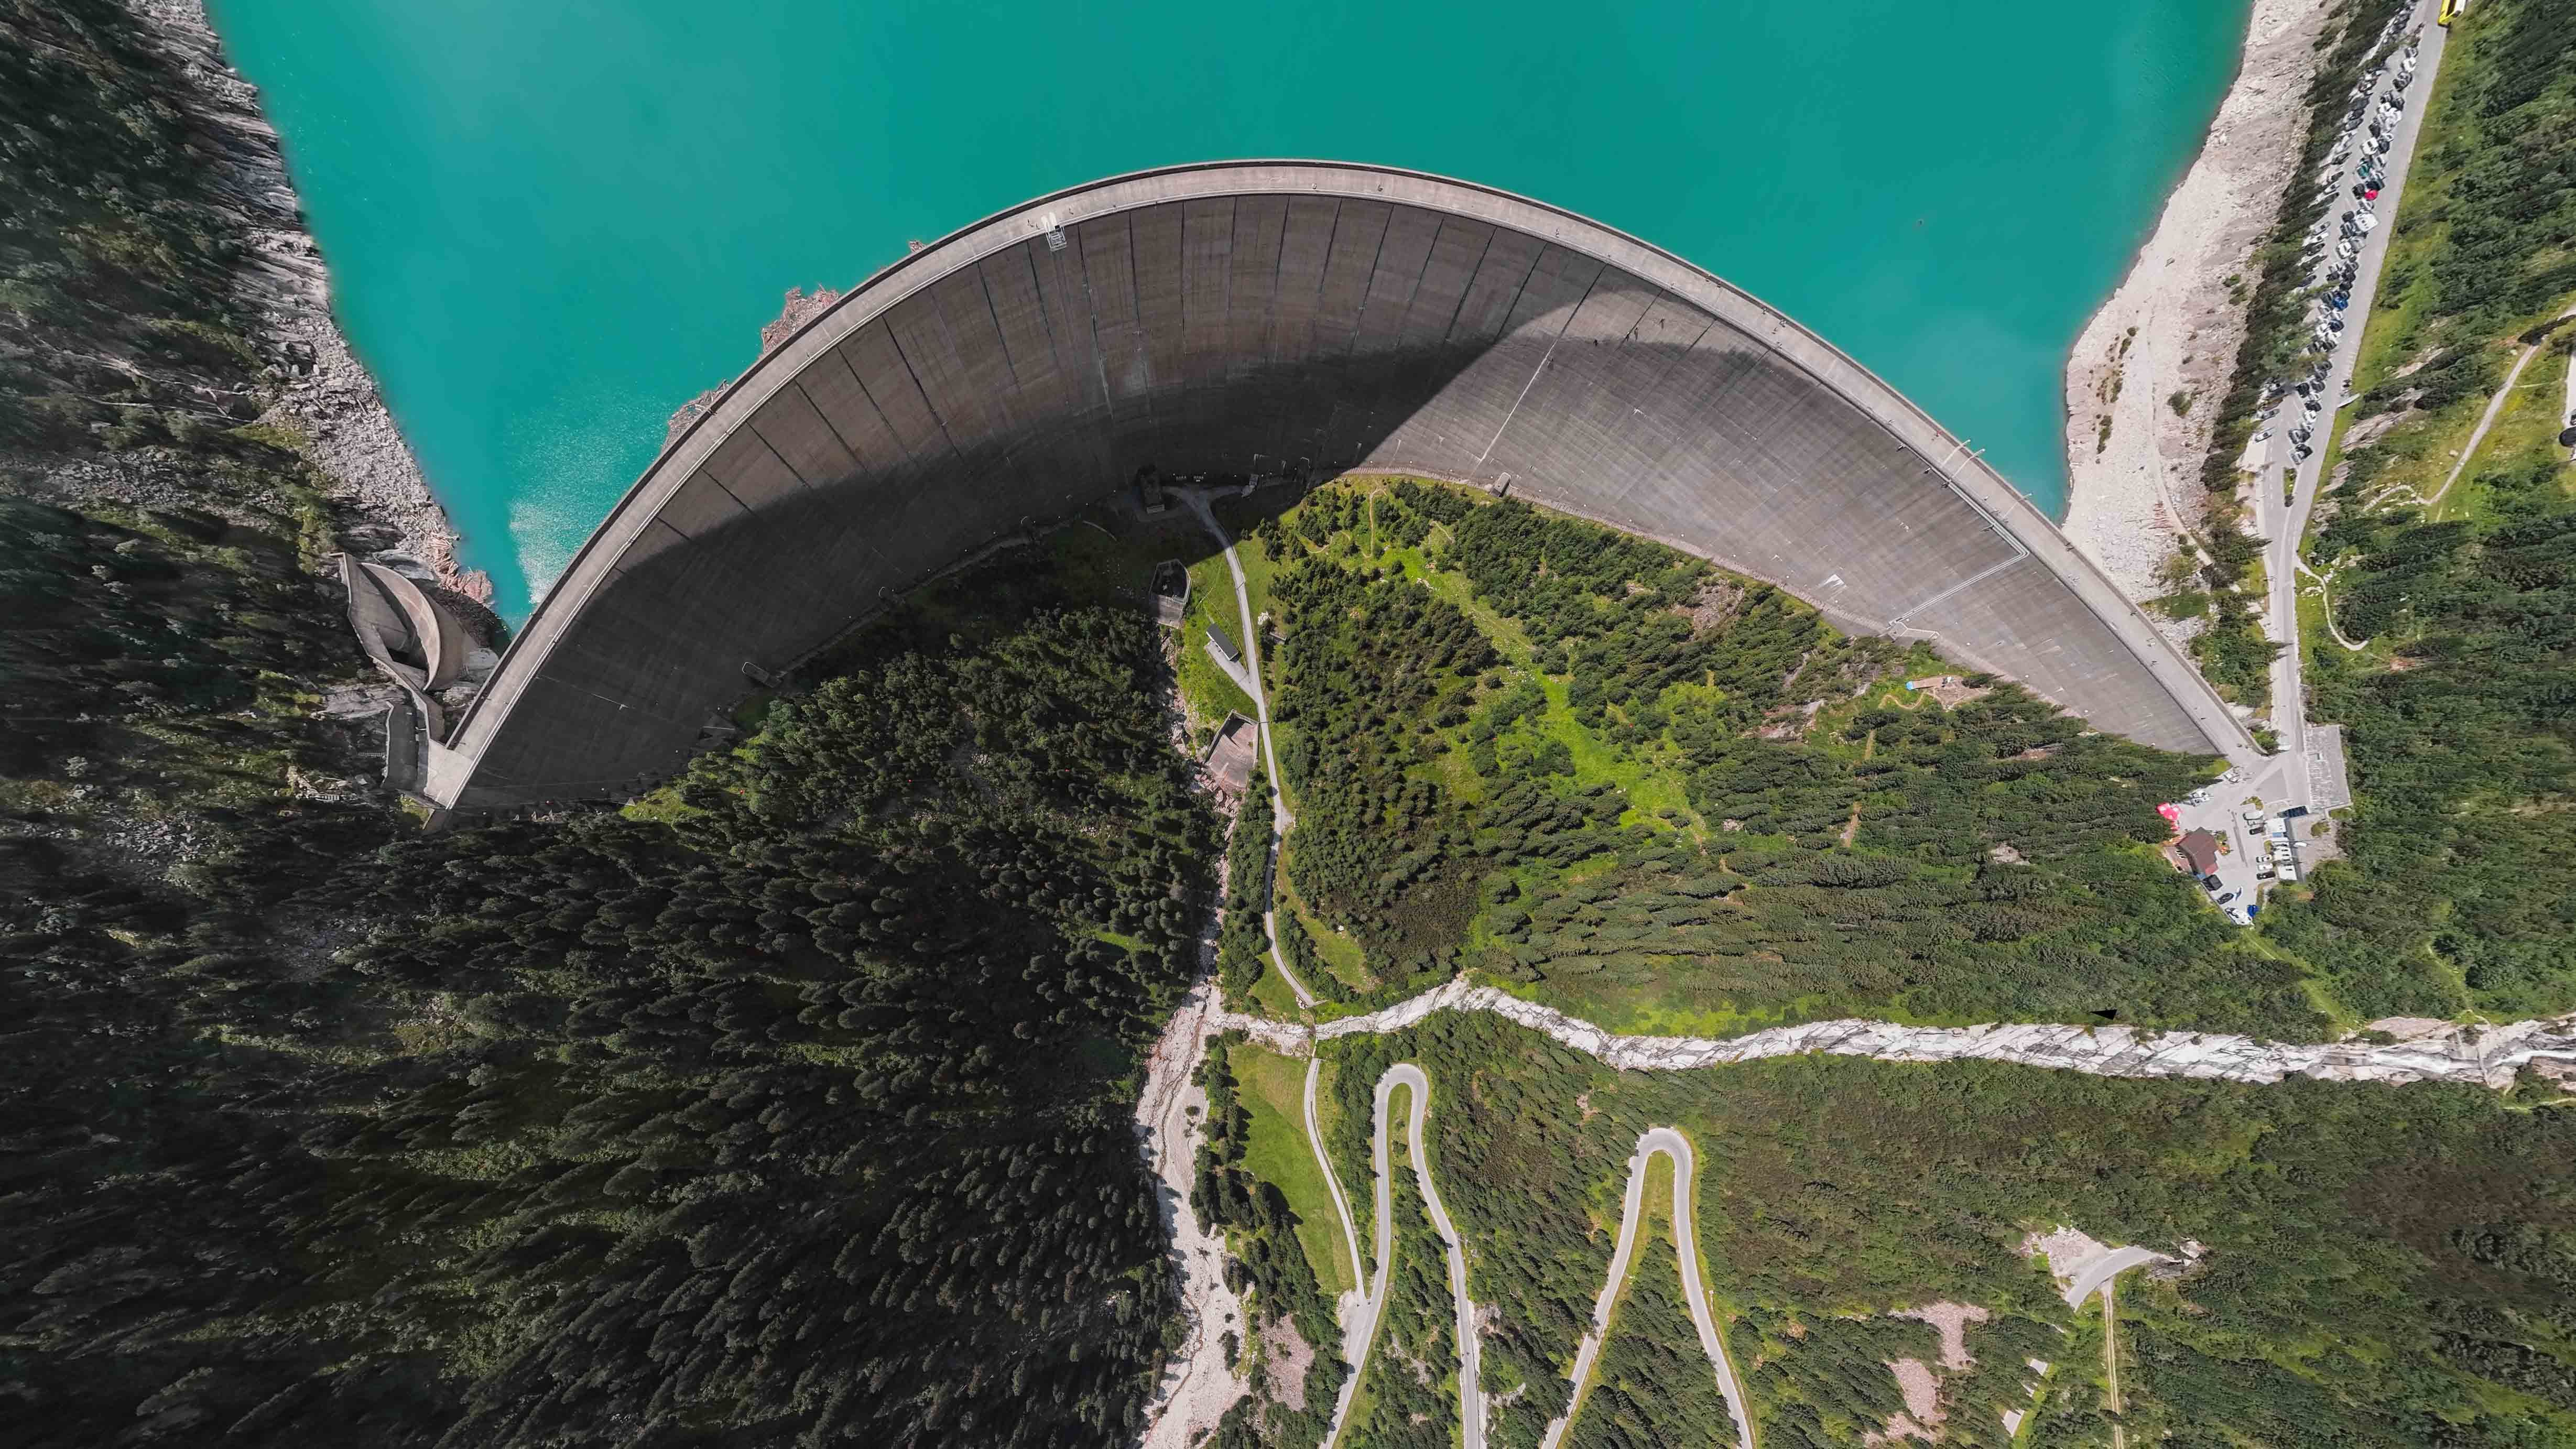 Large traditional dams can provide an abundance of clean energy, but they profoundly alter a region's water table and watercourse (Credit: Getty Images)